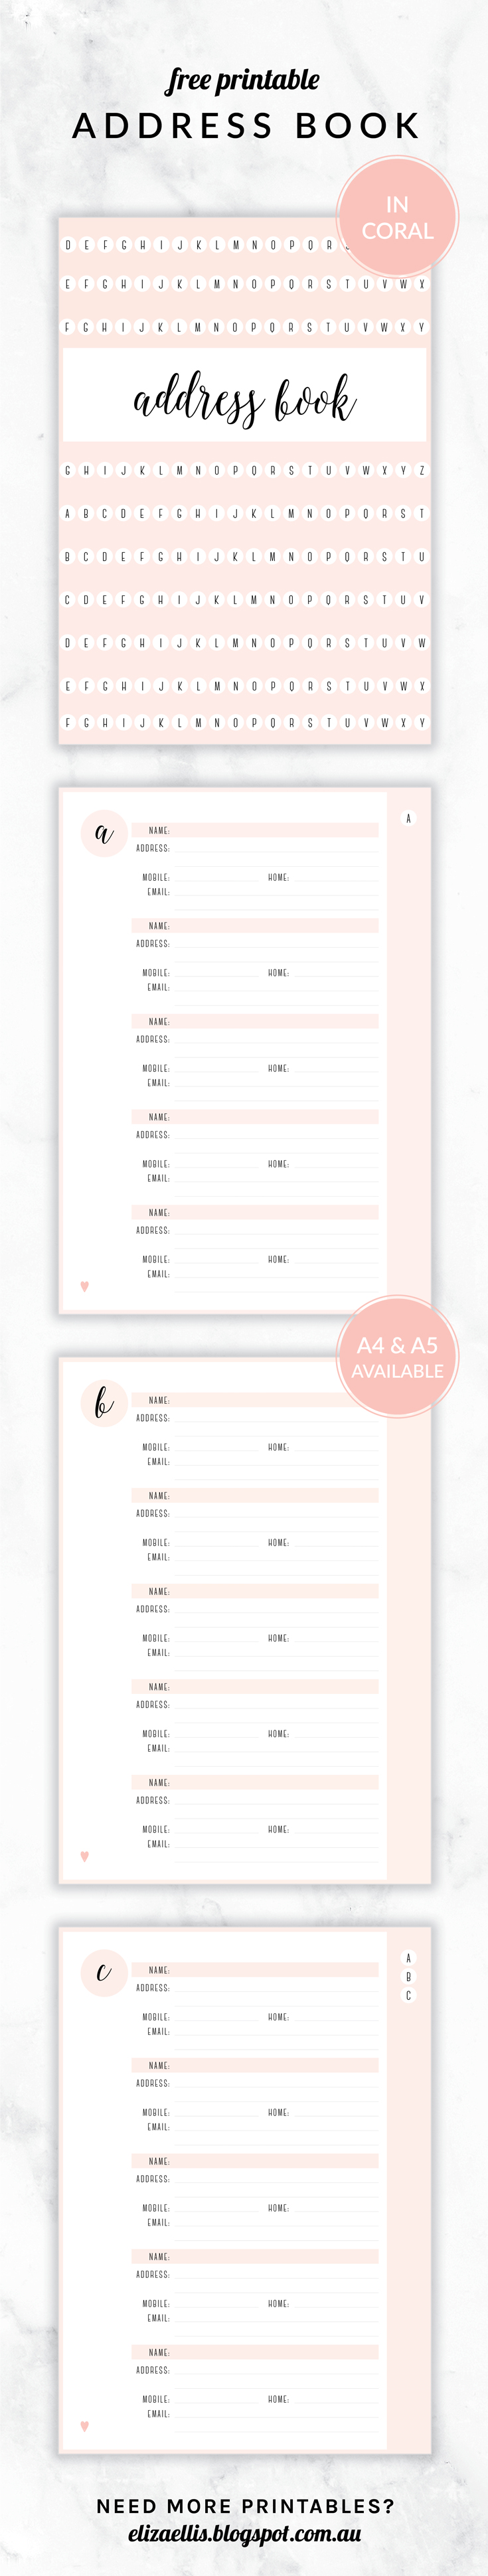 Free Printable Irma Address Book Eliza Ellis Available In 6 Colors And In Both A4 And A5 Sizes Planner Printables Free Free Printables Printable Planner